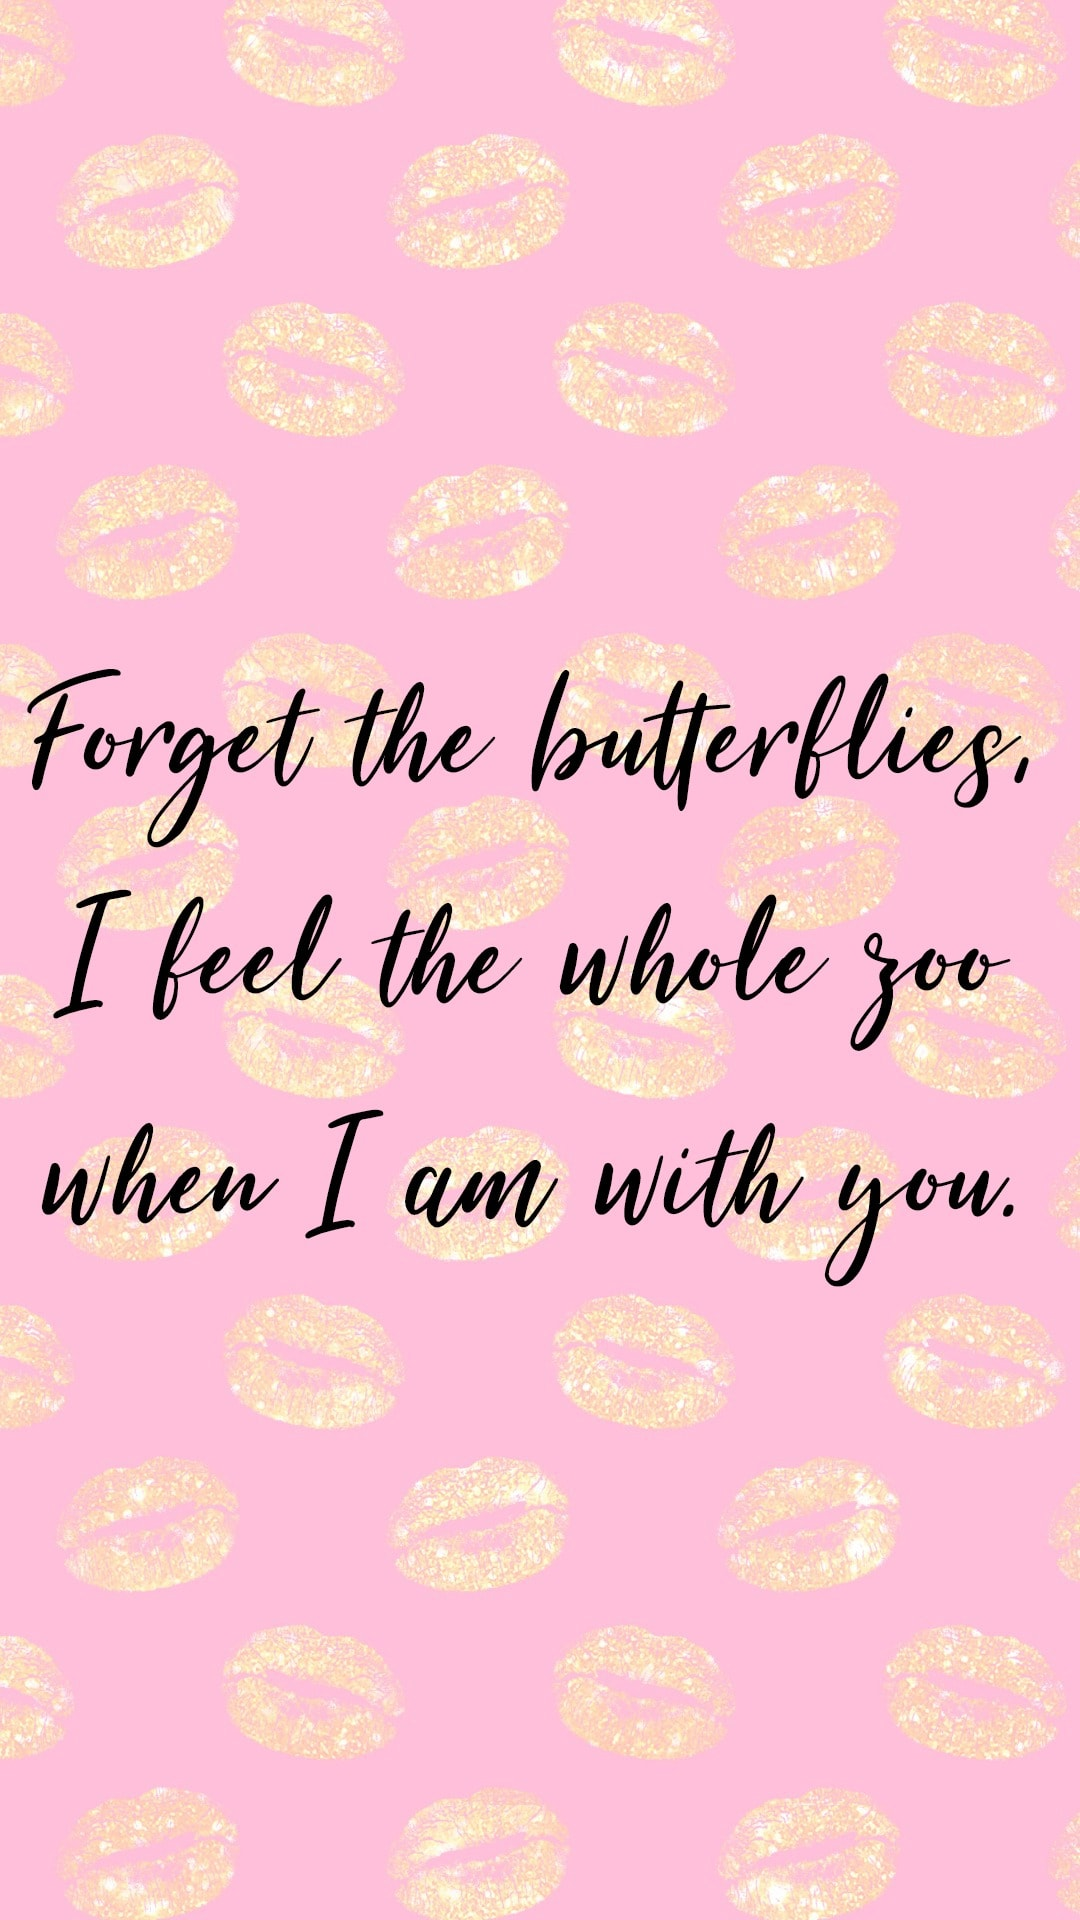 Forget the butterflies. I feel the whole zoo when I'm with you.